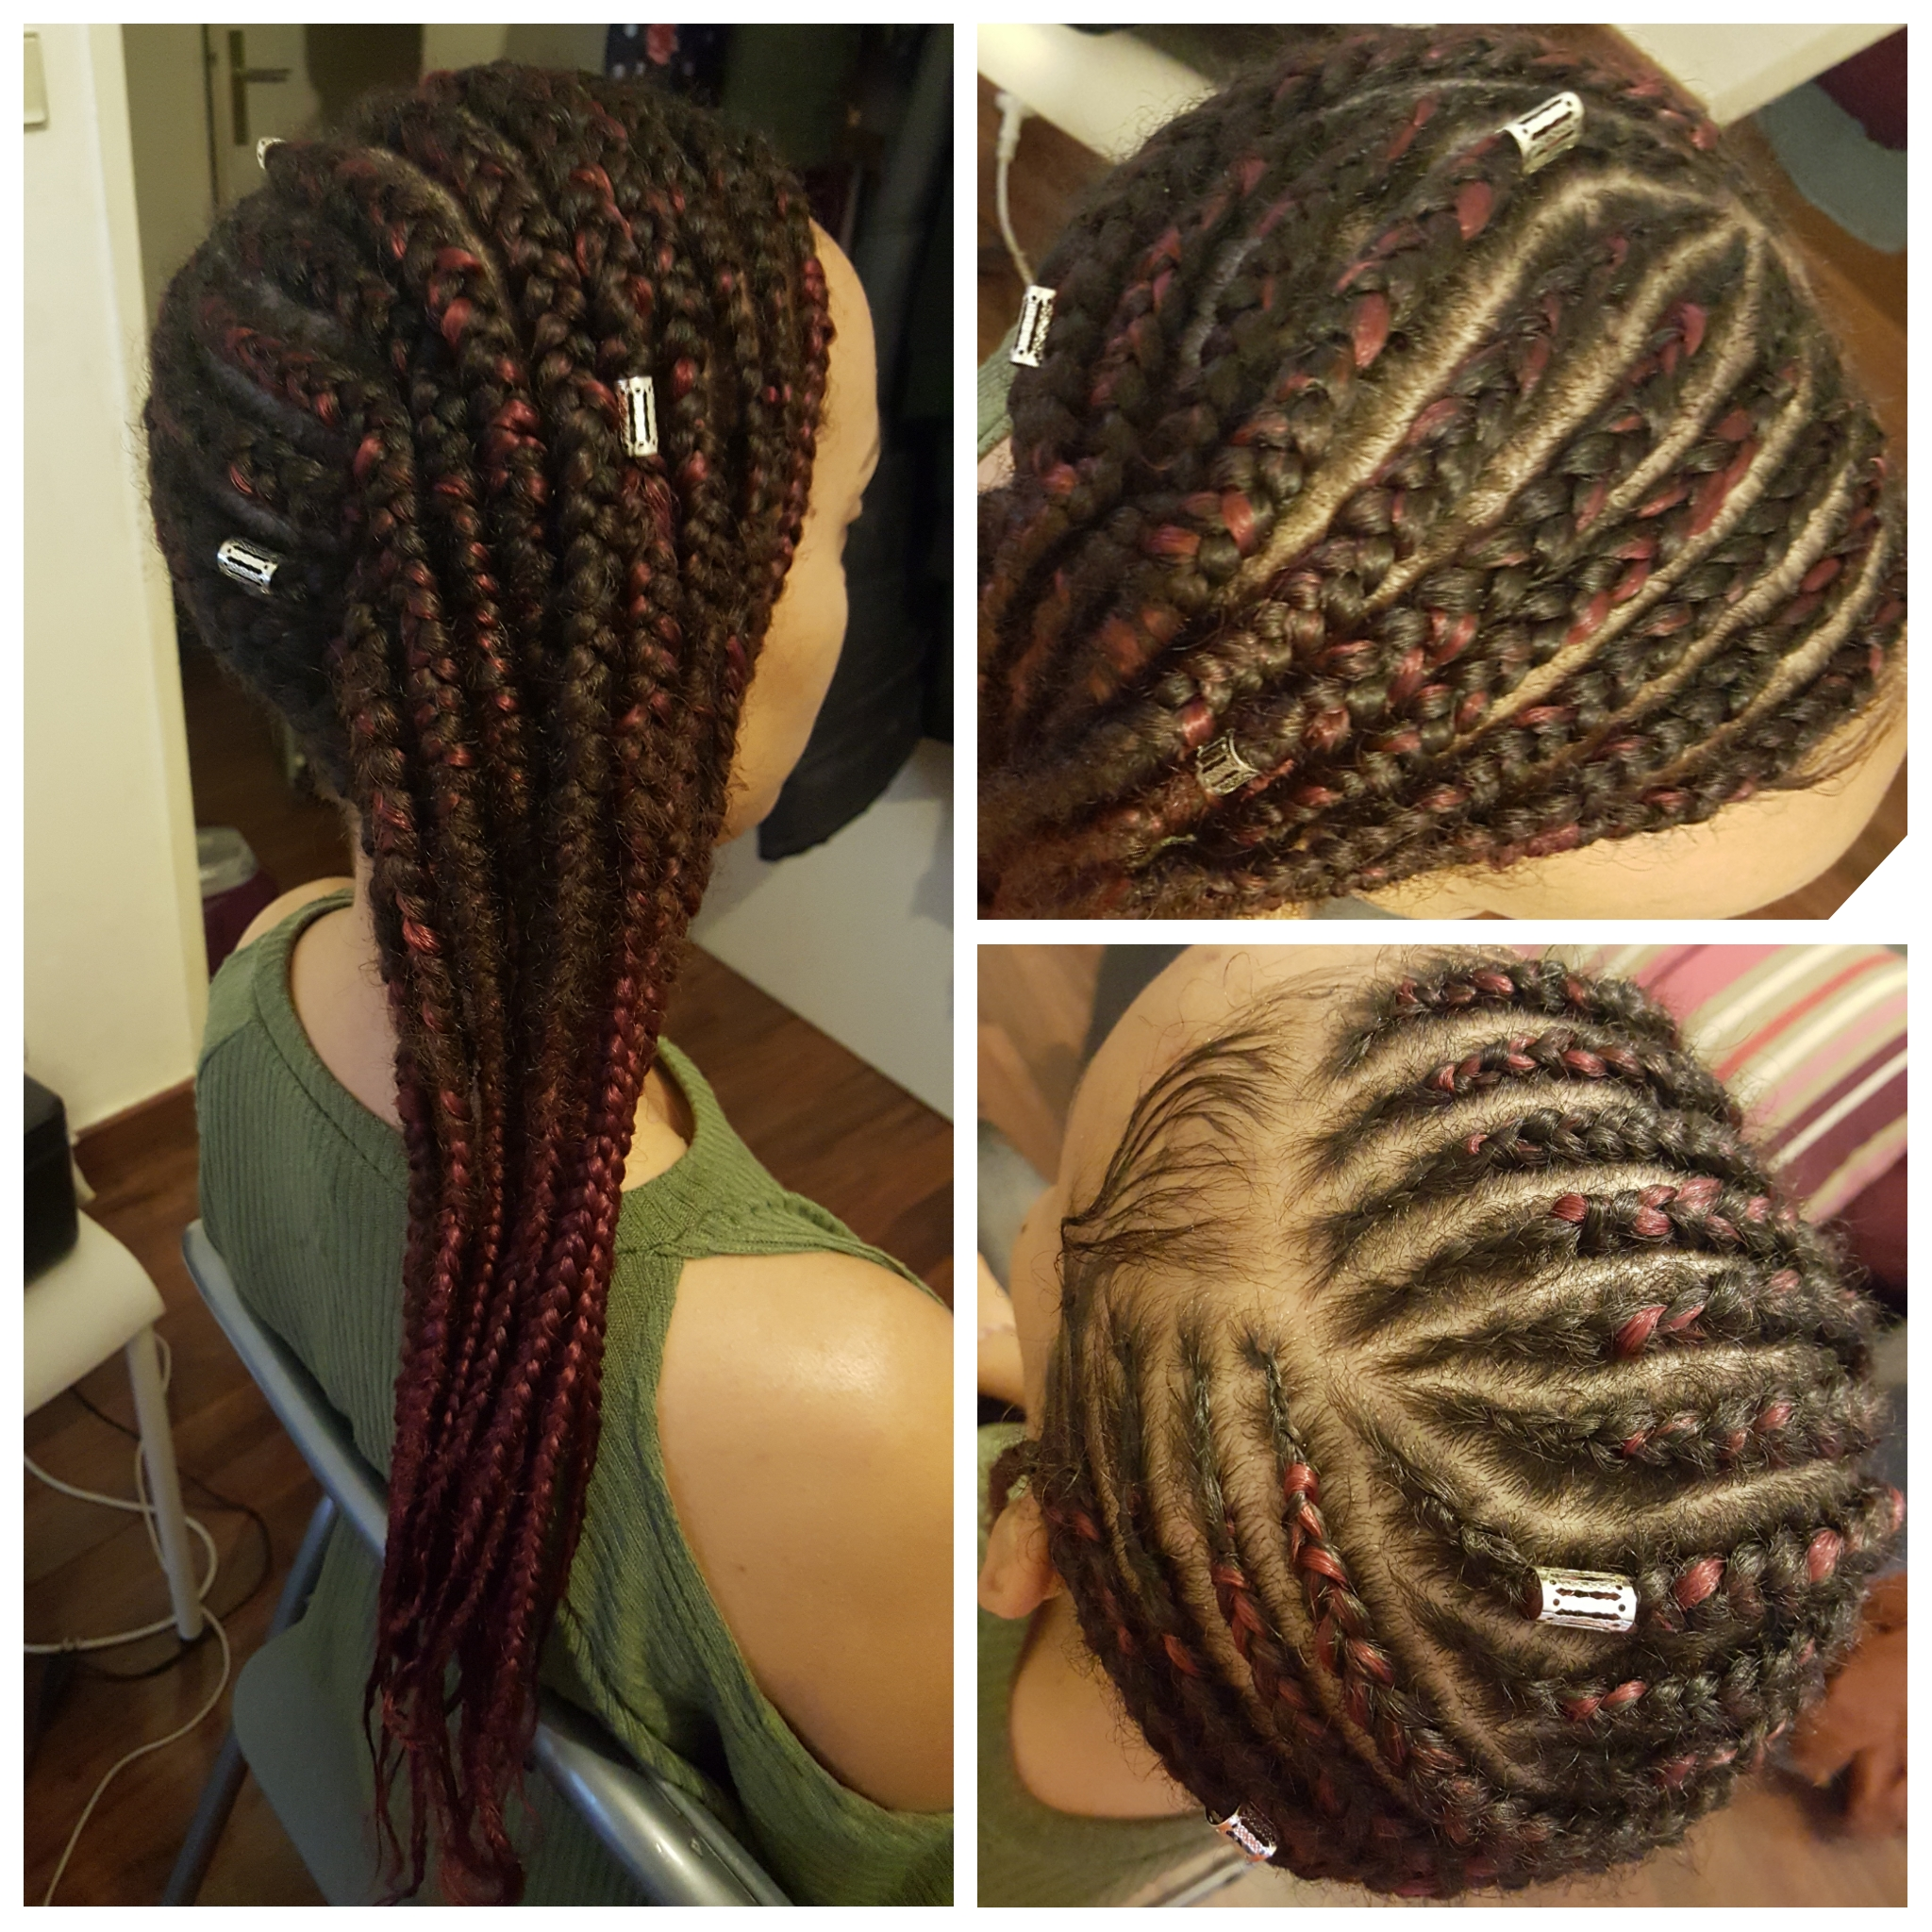 salon de coiffure afro tresse tresses box braids crochet braids vanilles tissages paris 75 77 78 91 92 93 94 95 ZNQLMGKO